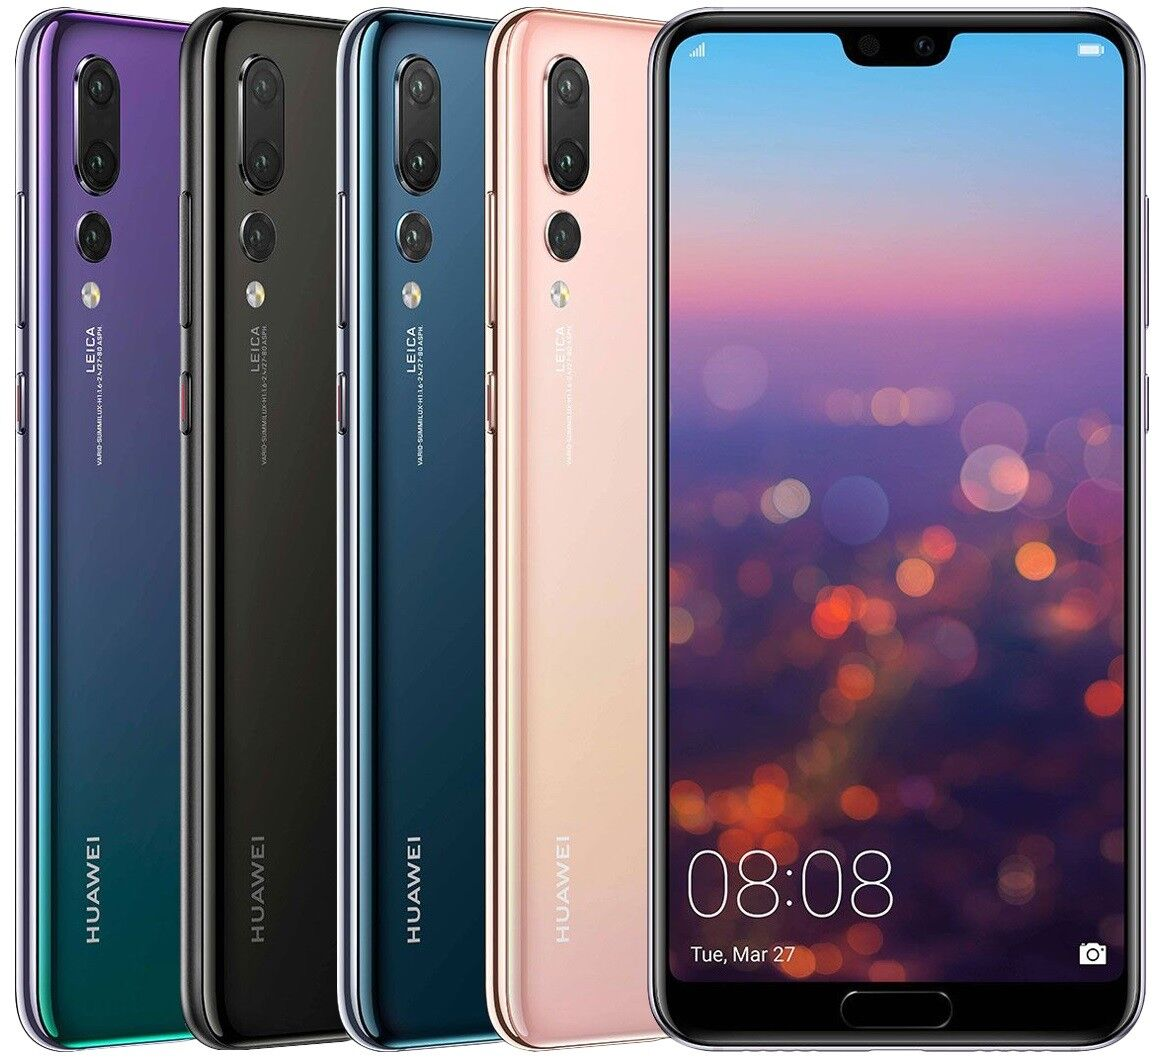 Купить Huawei P20 Pro 128GB CLT-L29 Dual Sim (FACTORY UNLOCKED) Black, Blue, Twilight